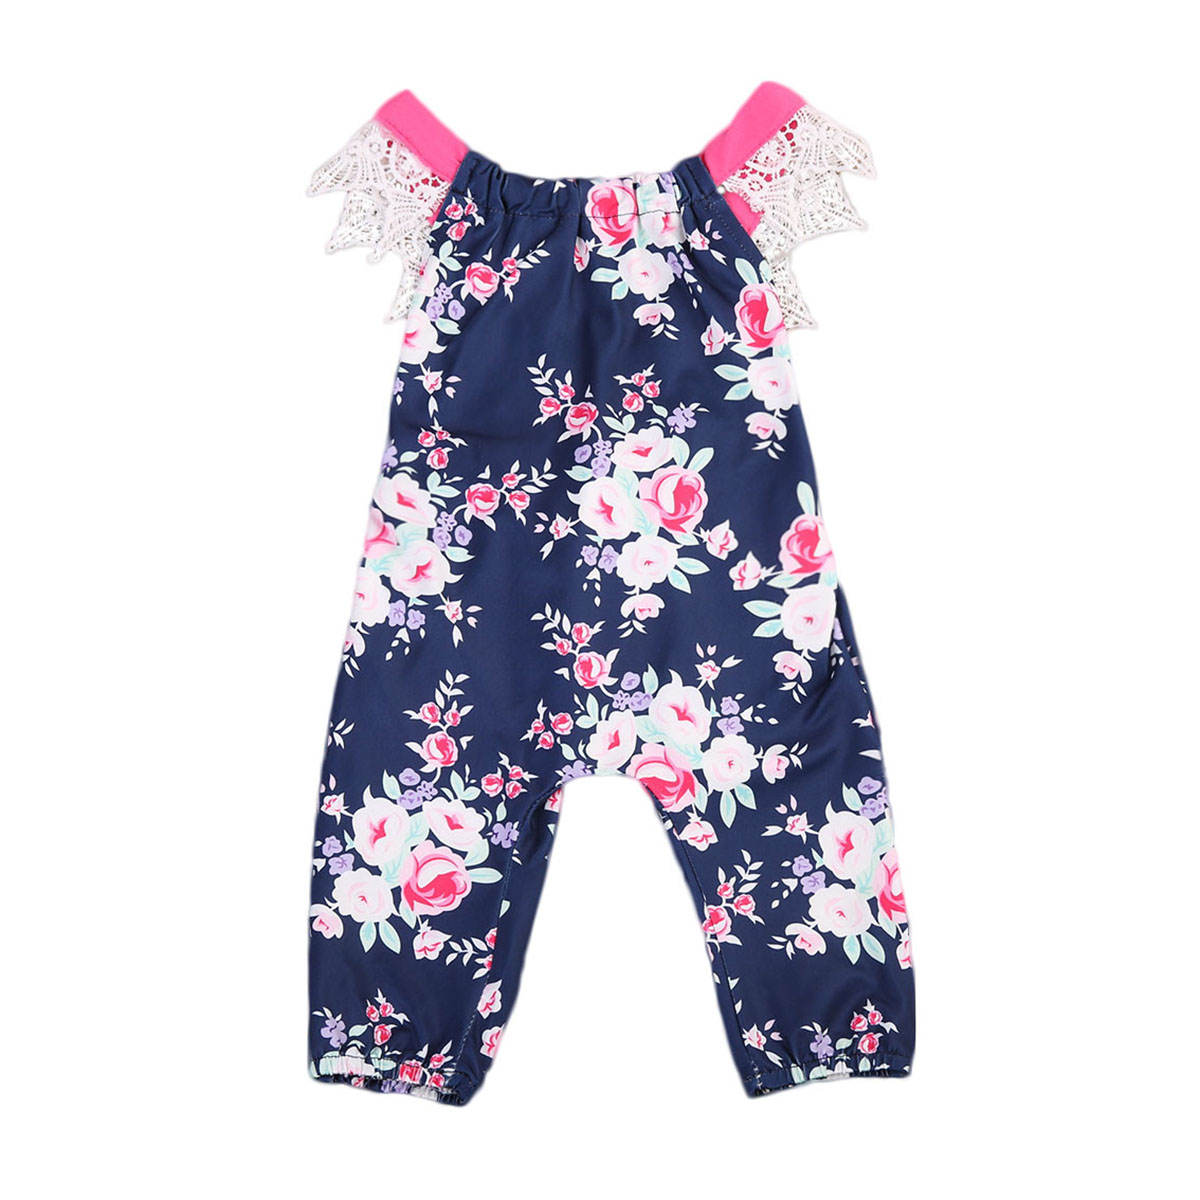 Toddler Baby Girls Rompers Floral Lace Backless Jumpsuit Sunsuit HOT